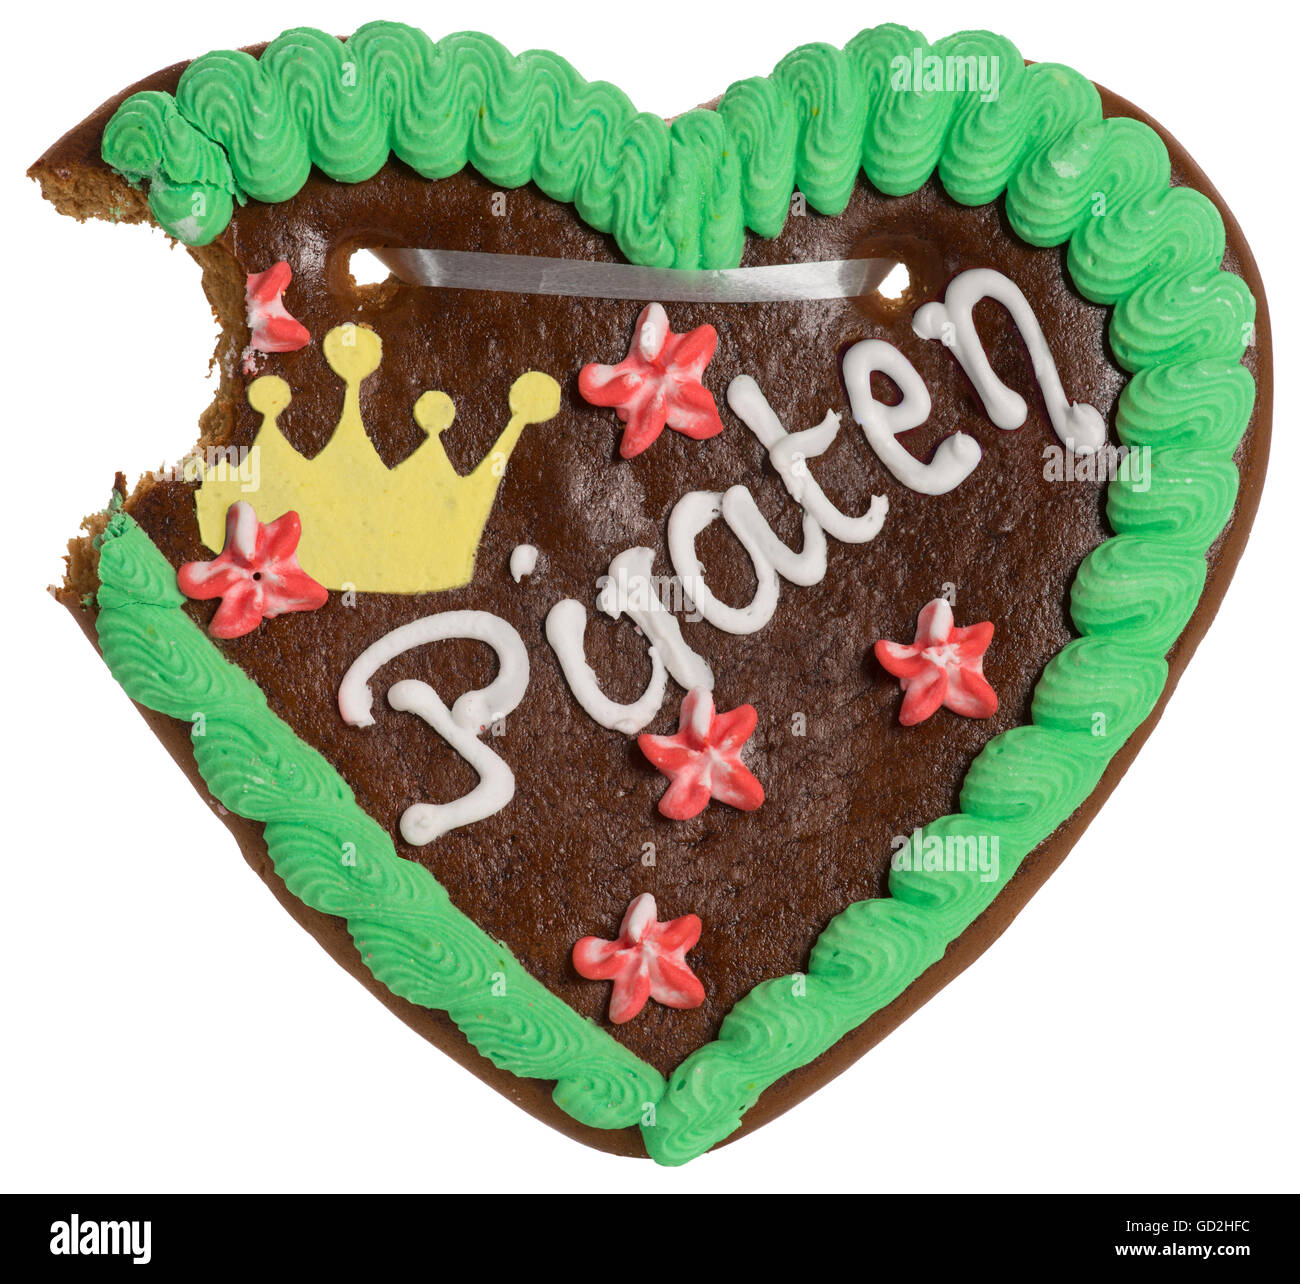 food, gingerbread, with the inscription 'Piraten', Germany, 2012, Additional-Rights-Clearences-NA - Stock Image